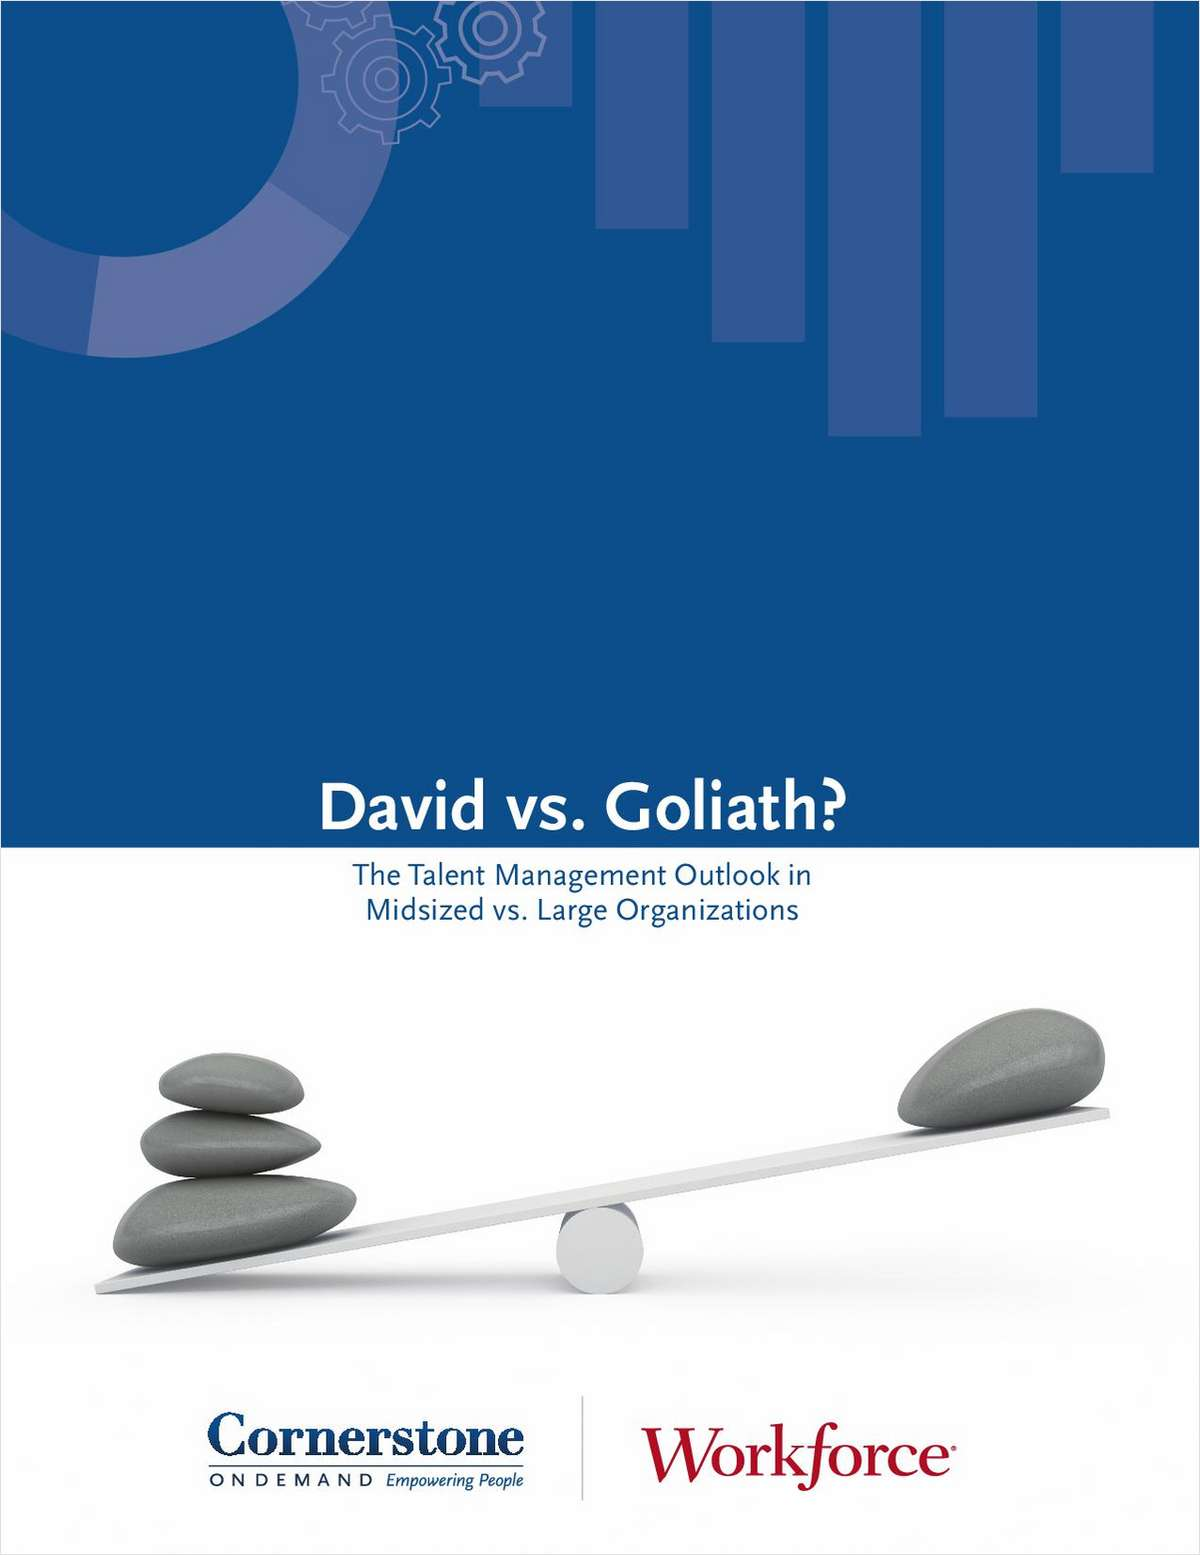 David vs Goliath: The Talent Management Outlook in Midsized vs. Large Organizations